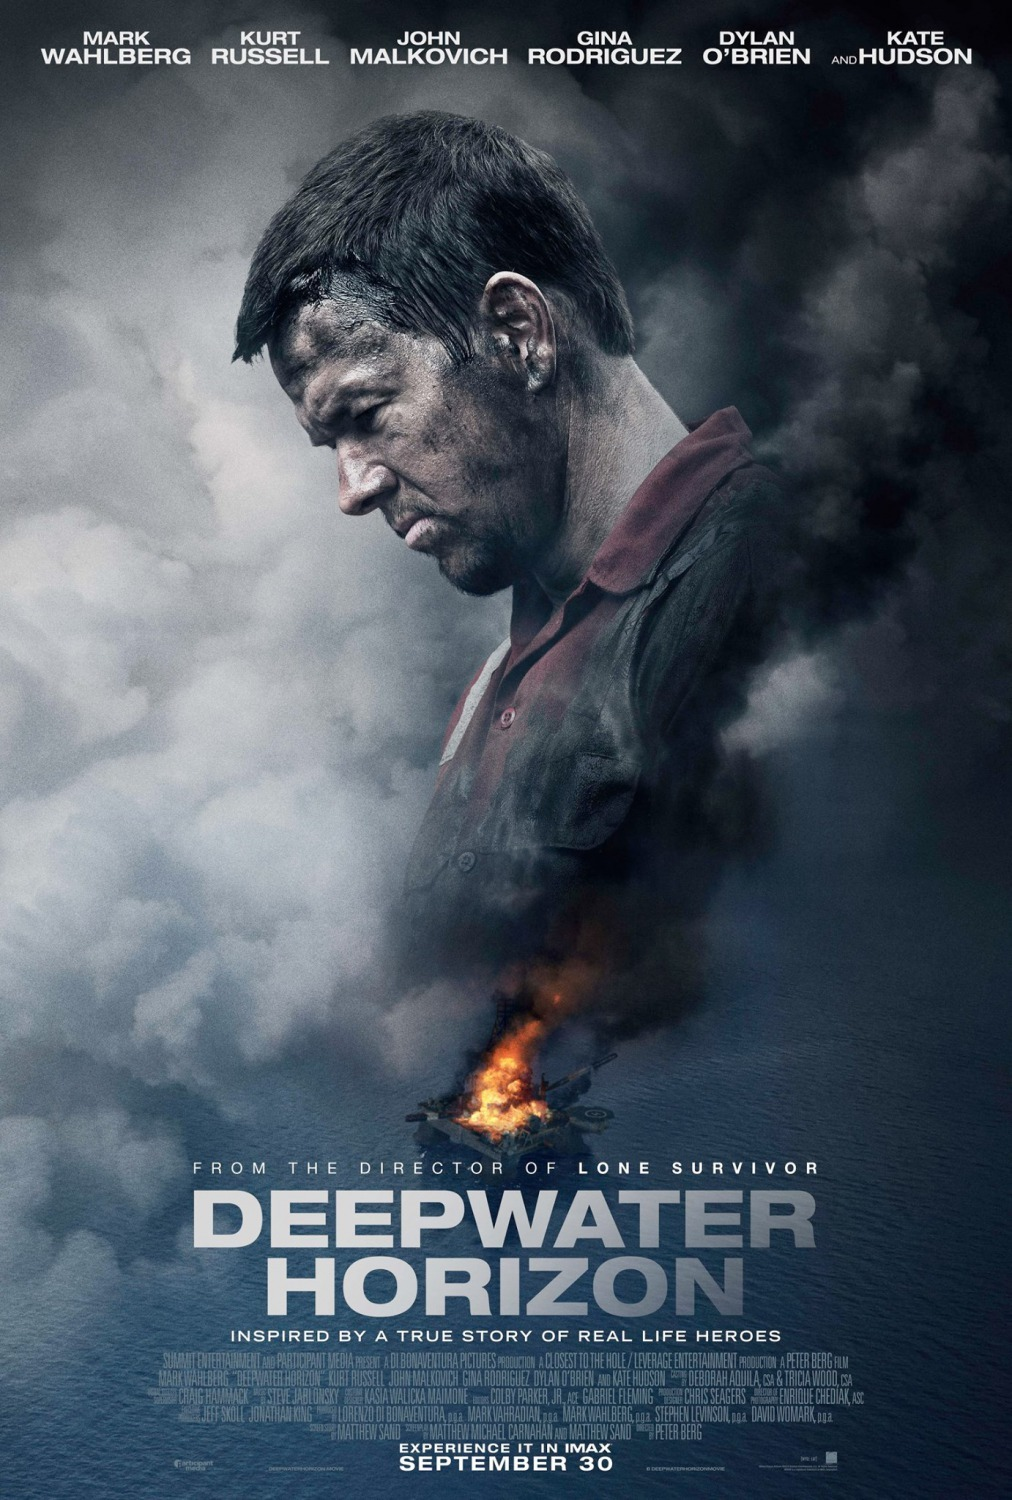 Deepwater Horizon (2016) Technical Specifications